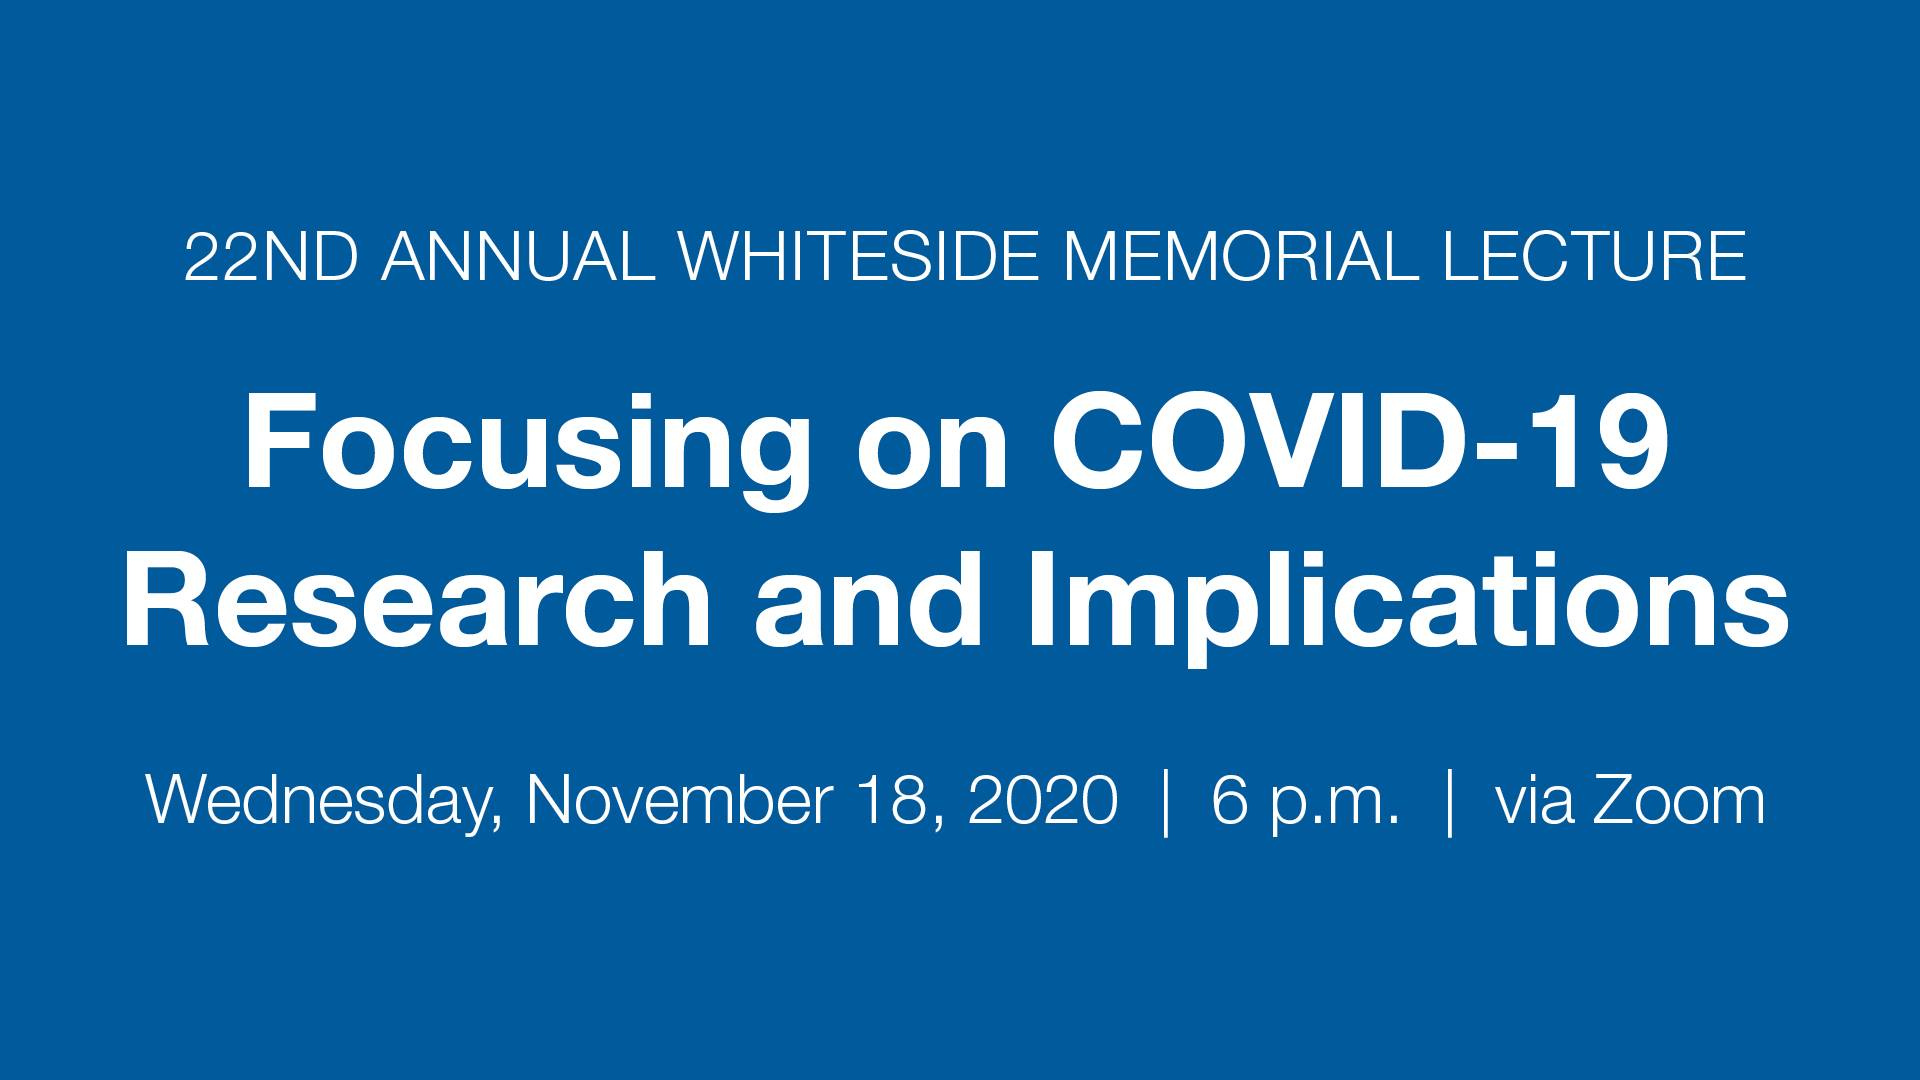 Annual Whiteside Memorial Lecture: Focusing on COVID-19 Research and Implications